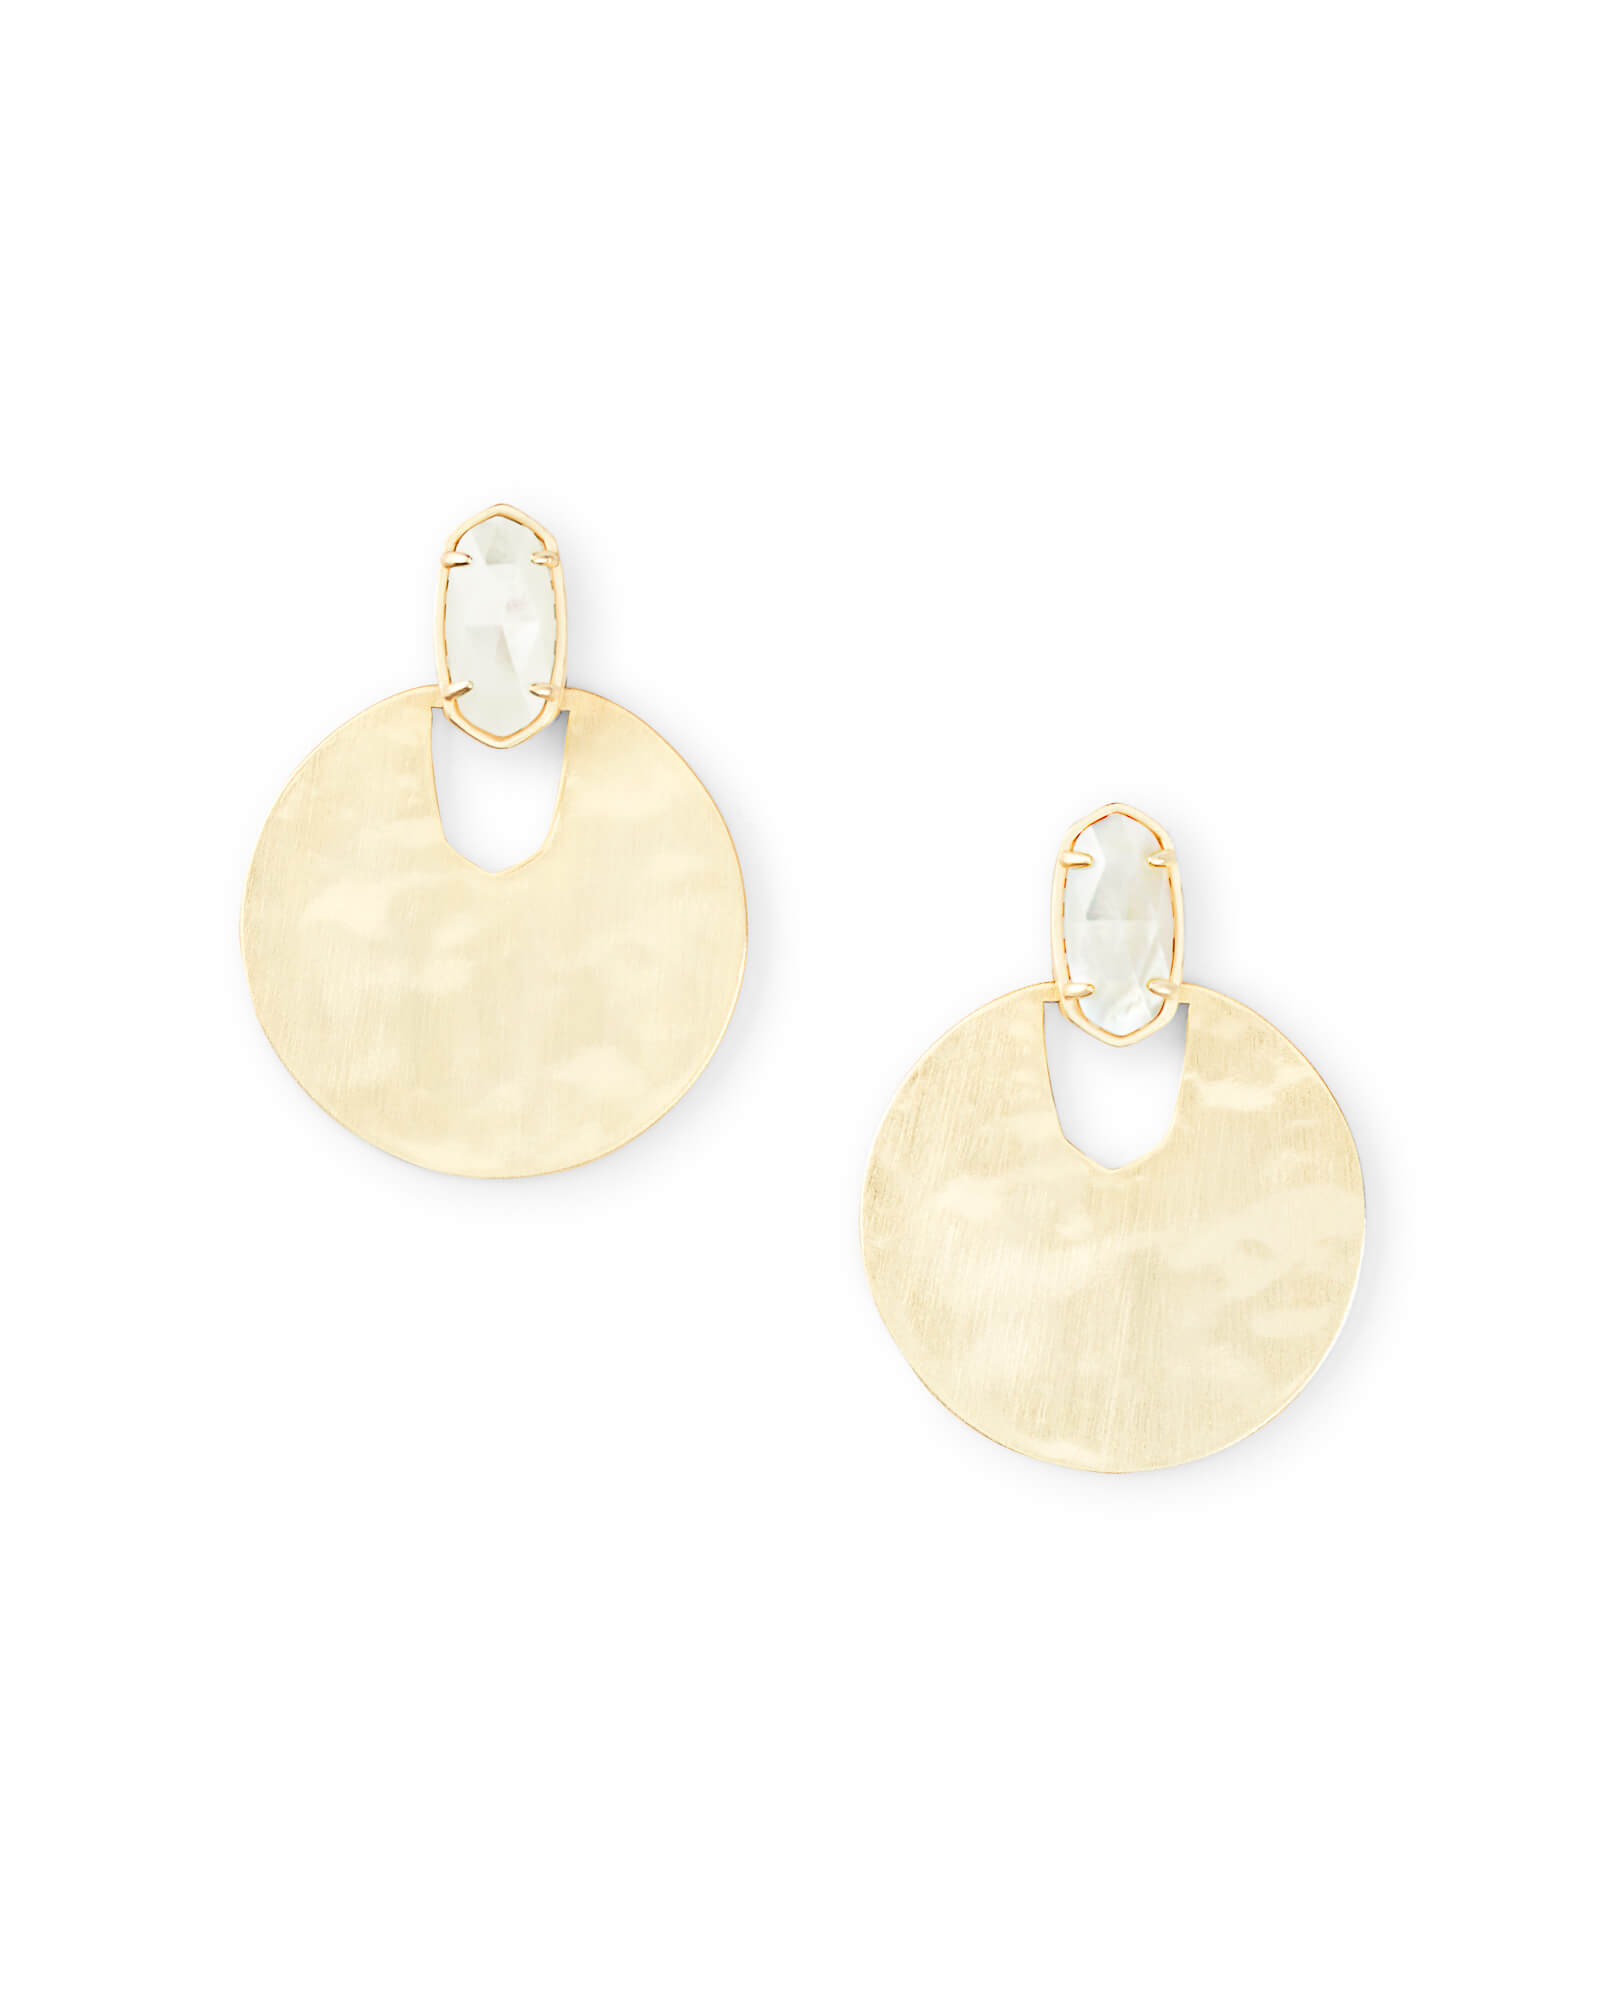 Deena Gold Hoop Earrings in Ivory Mother-of-Pearl